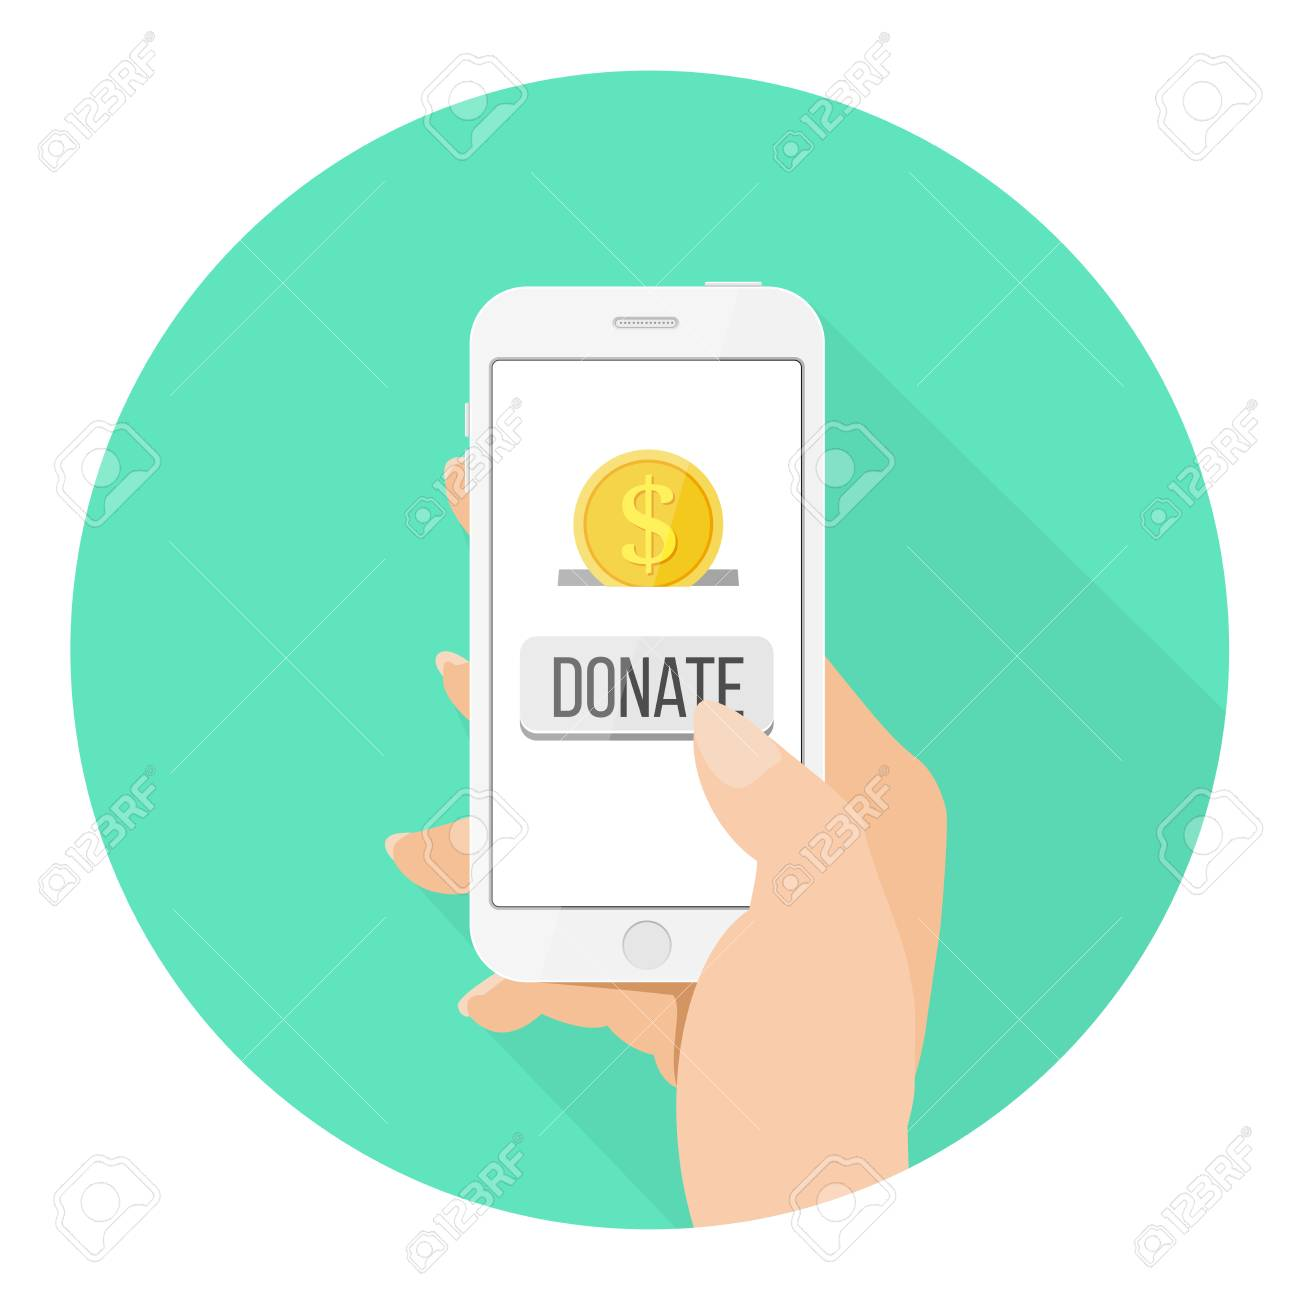 Online Donation Icon Smartphone With Hand And Money Flat Design Royalty Free Cliparts Vectors And Stock Illustration Image 83263241